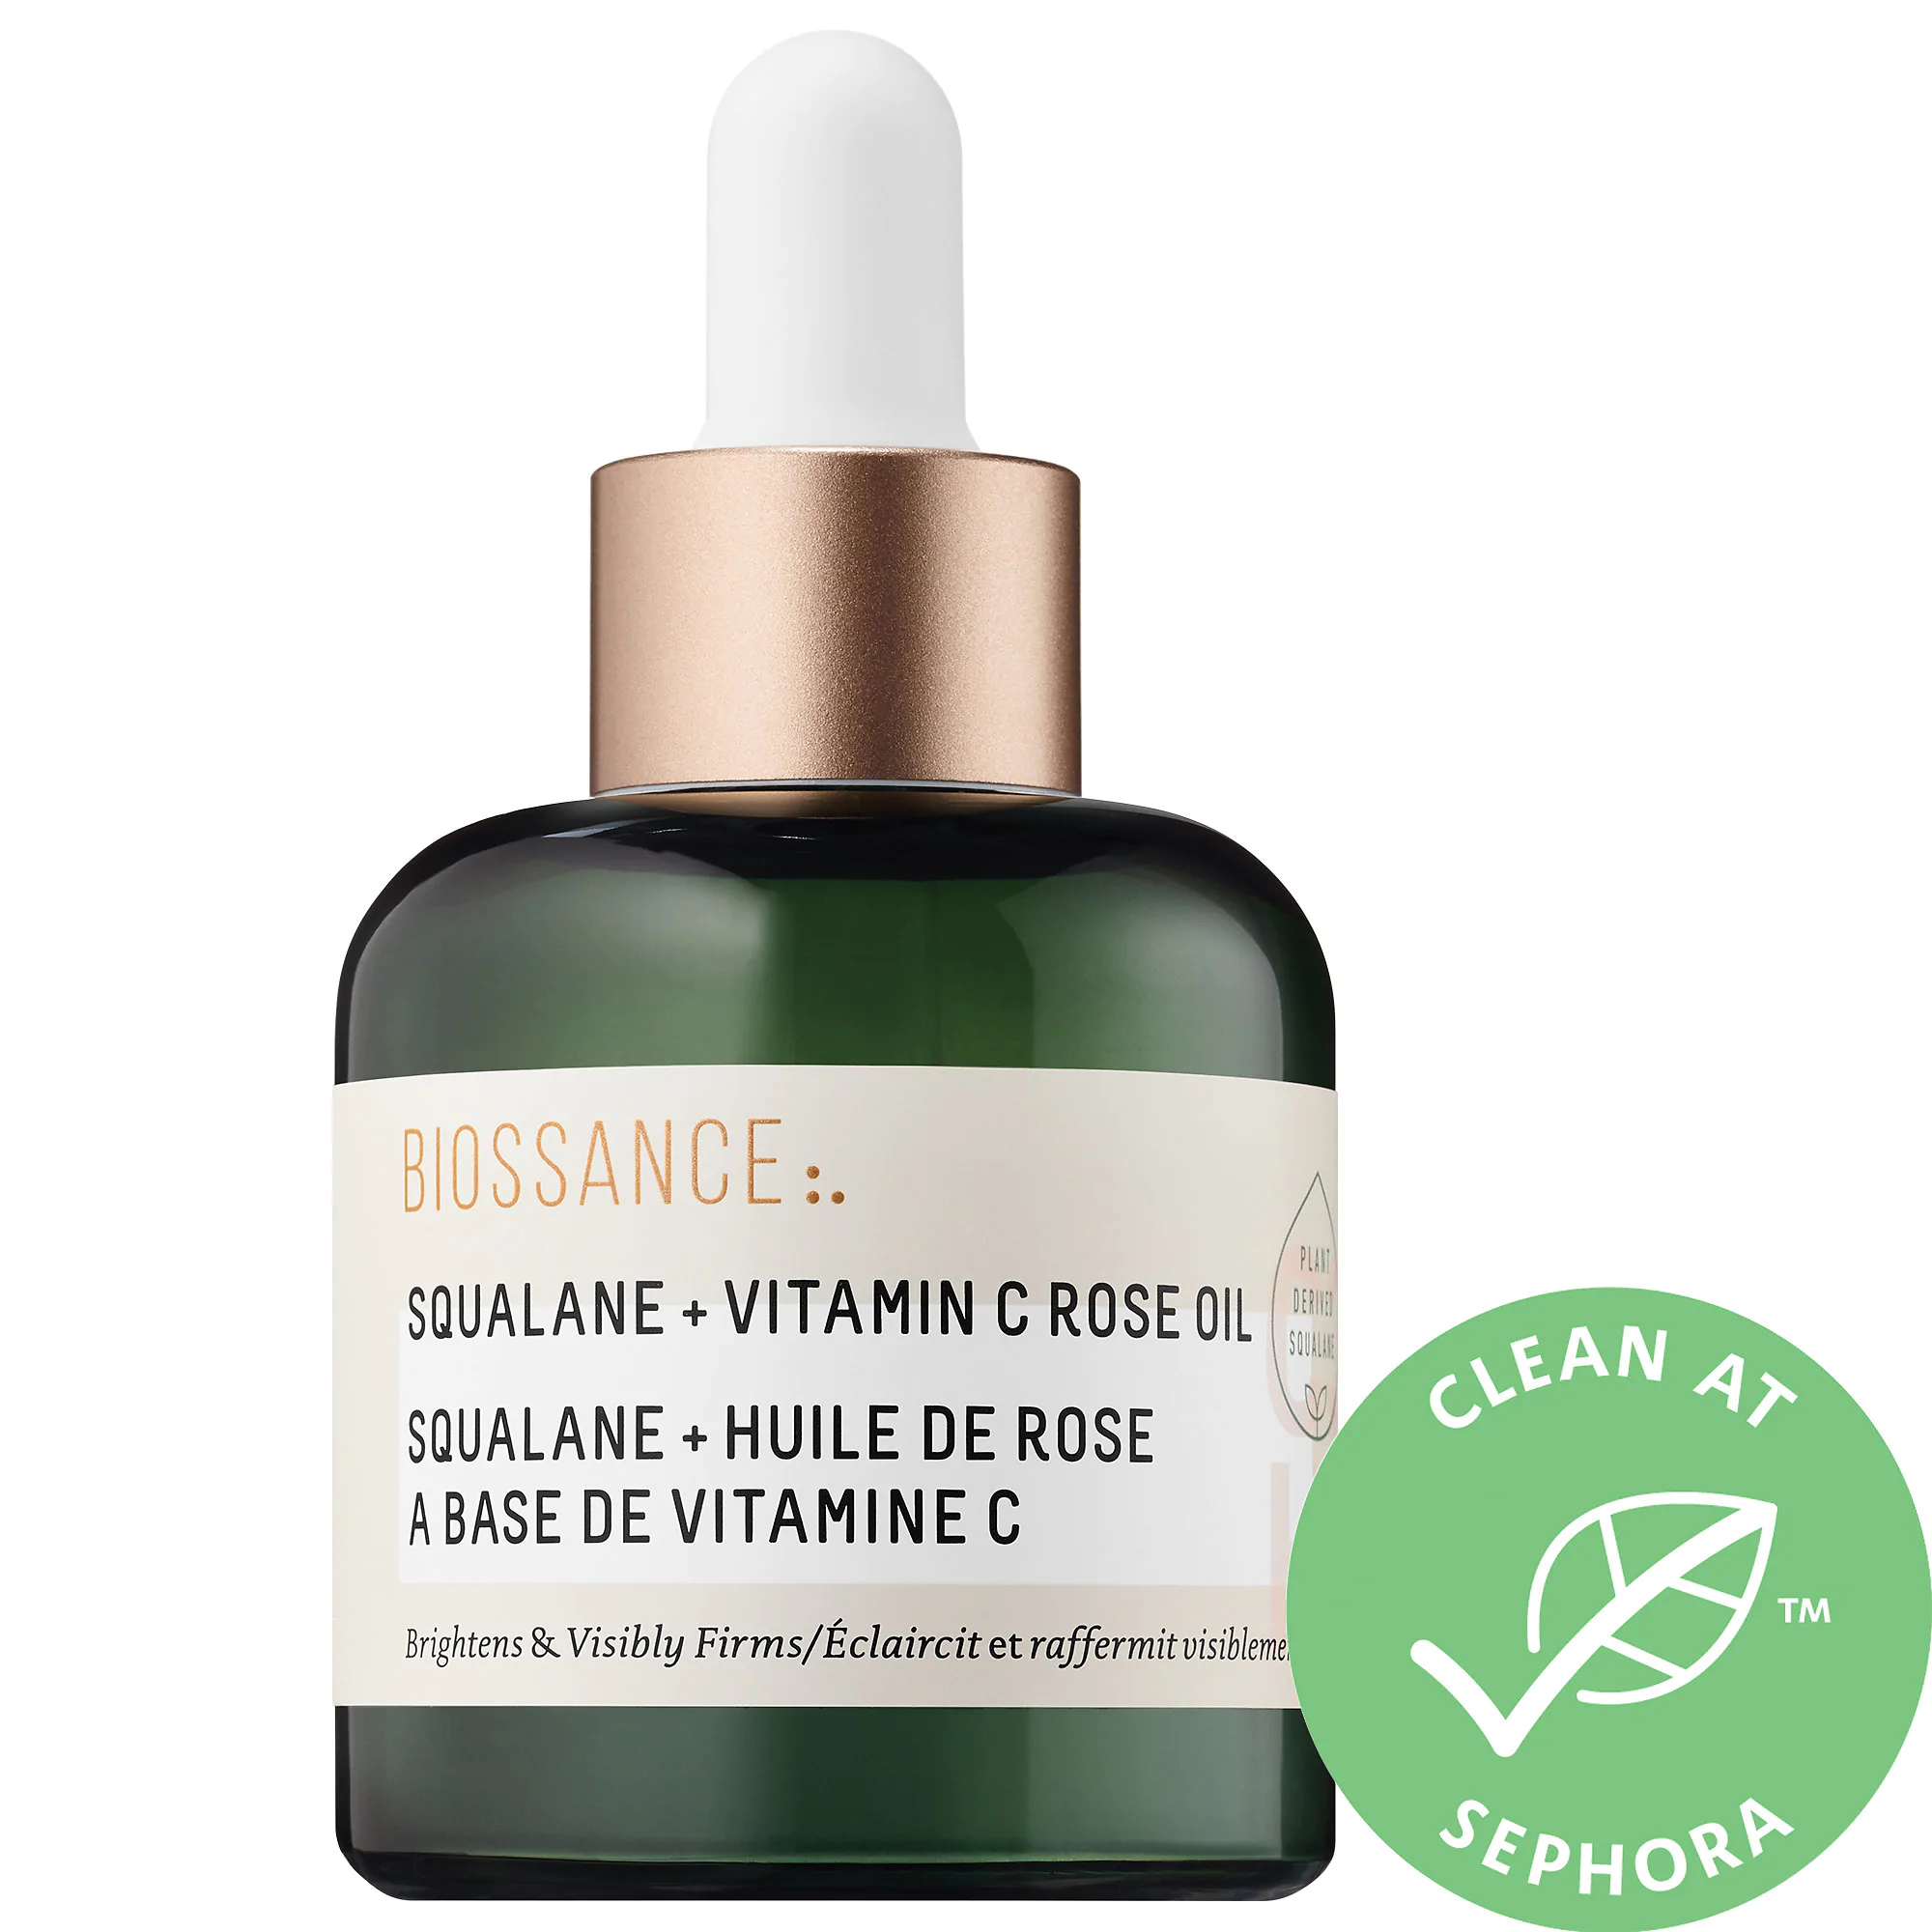 Biossance-Squalane + Vitamin C Rose Oil